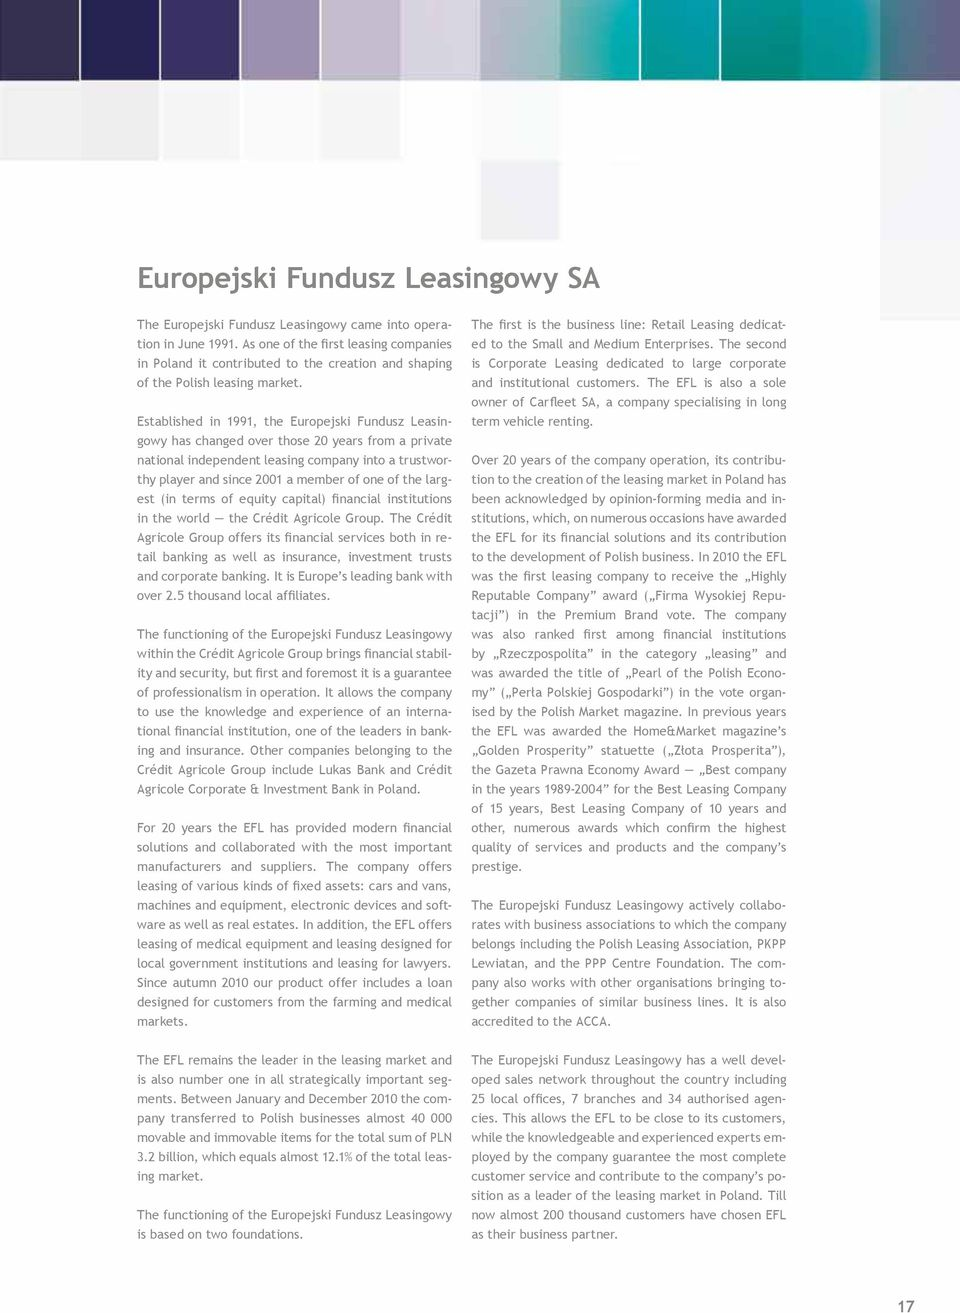 Established in 1991, the Europejski Fundusz Leasingowy has changed over those 20 years from a private national independent leasing company into a trustworthy player and since 2001 a member of one of